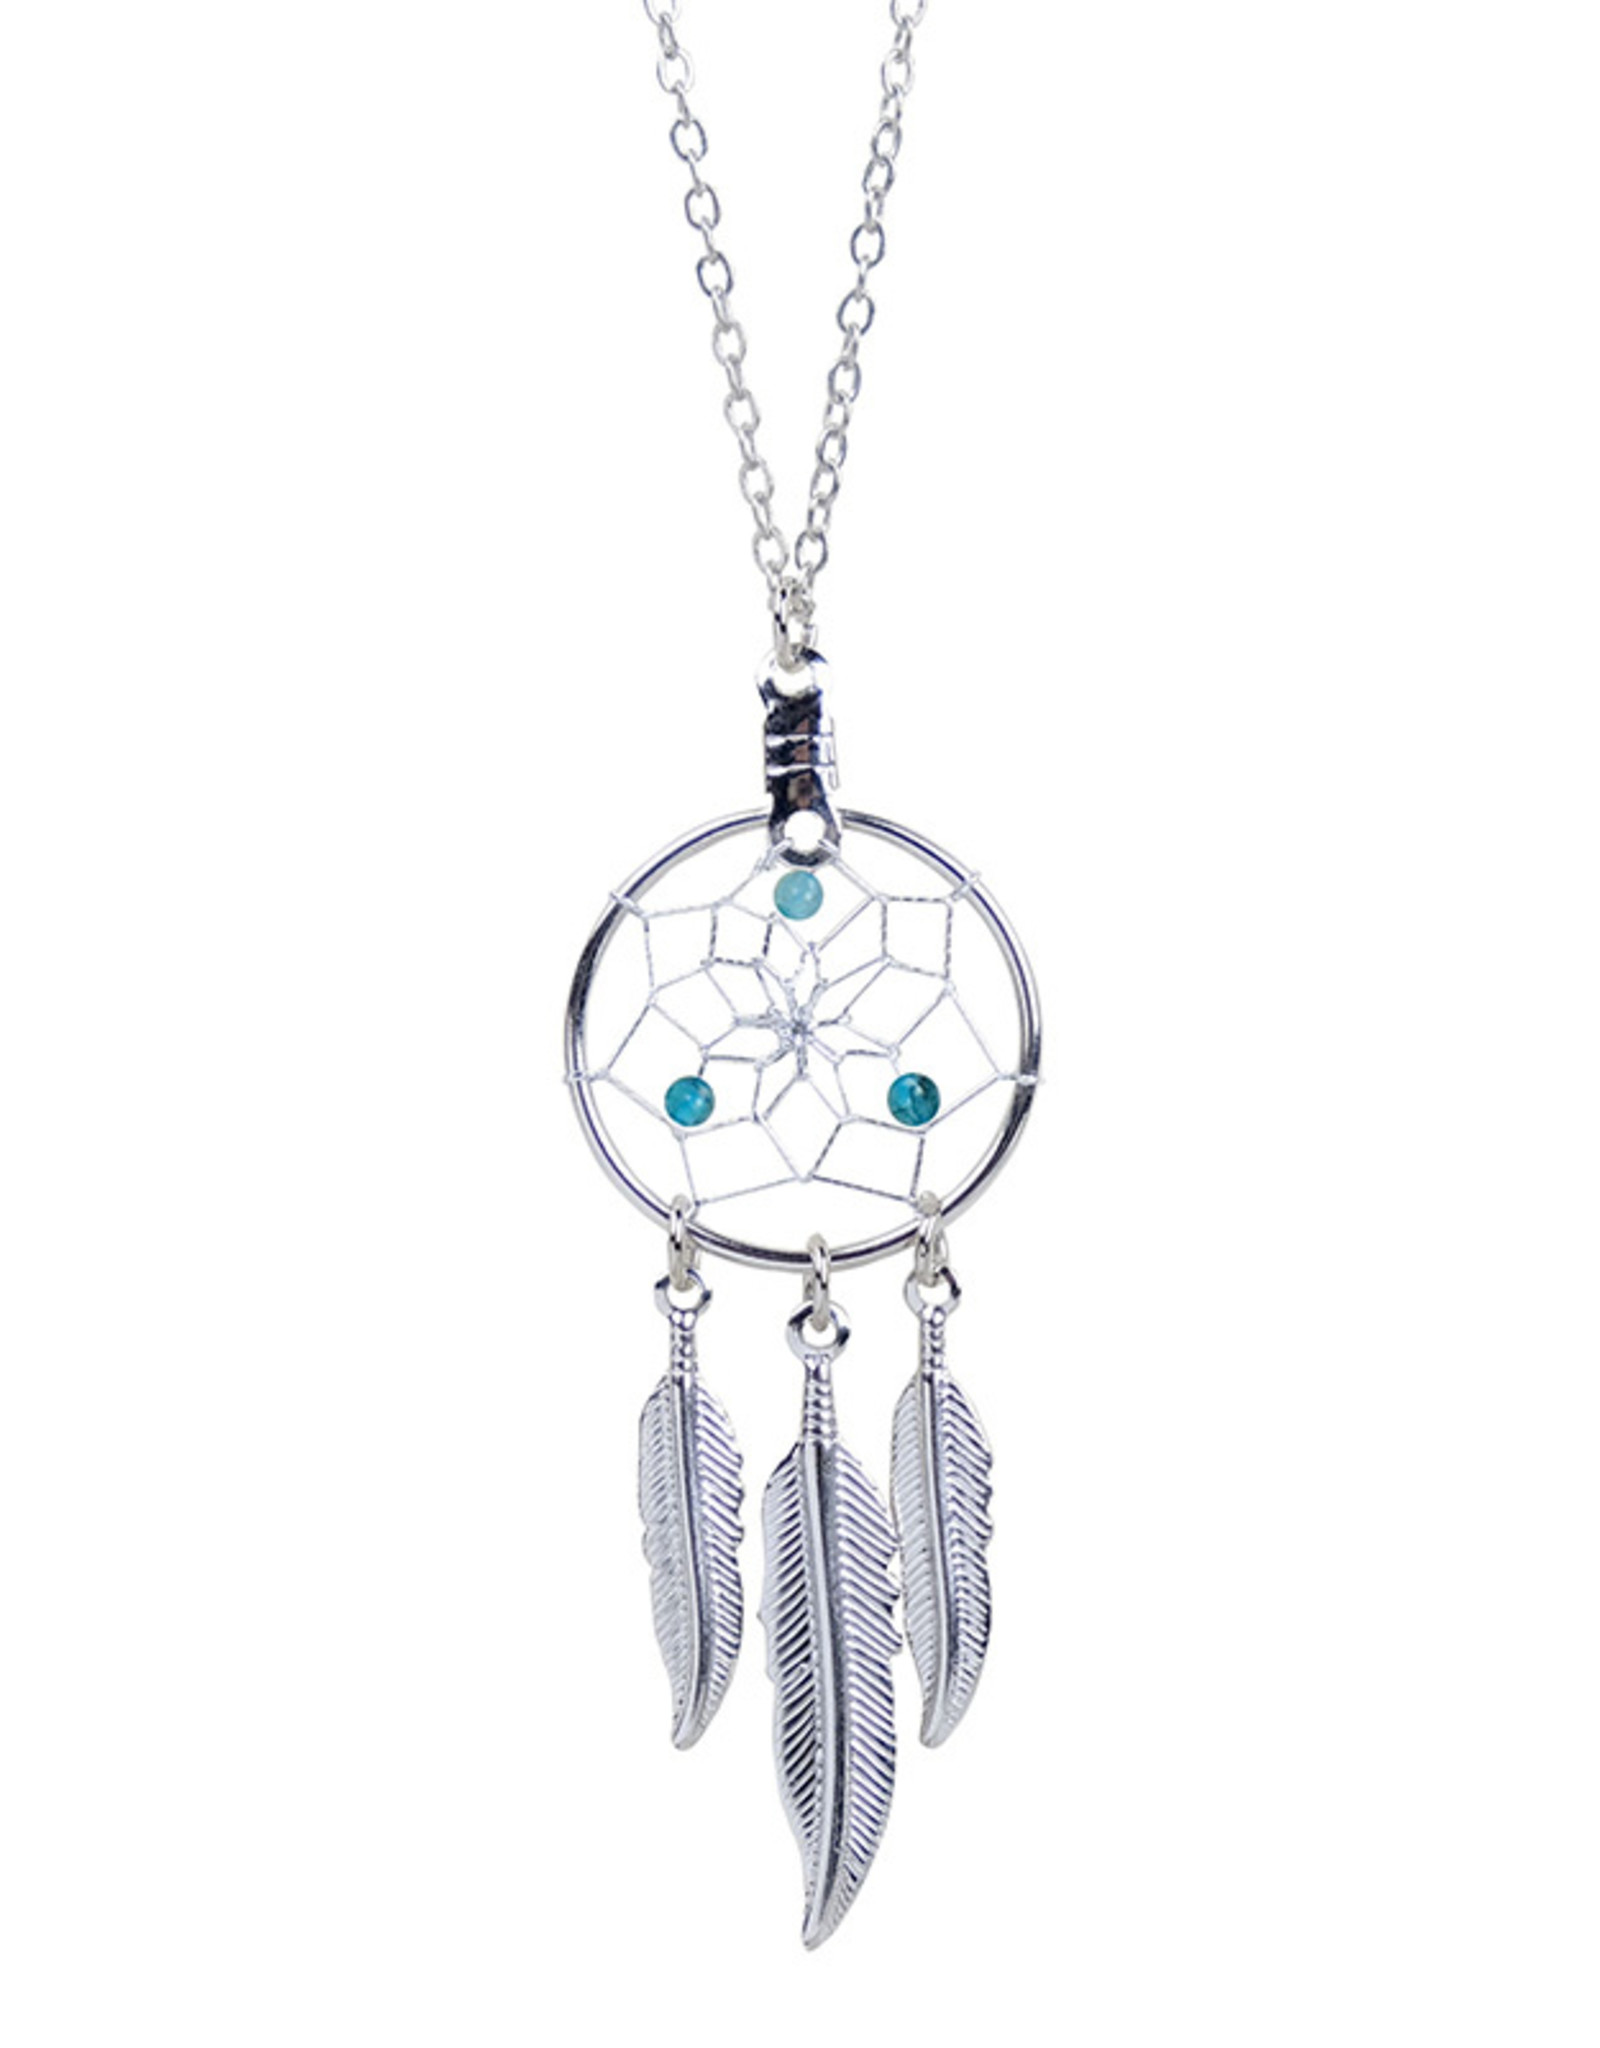 Birthstone Dreamcatcher Necklace - DC17-P